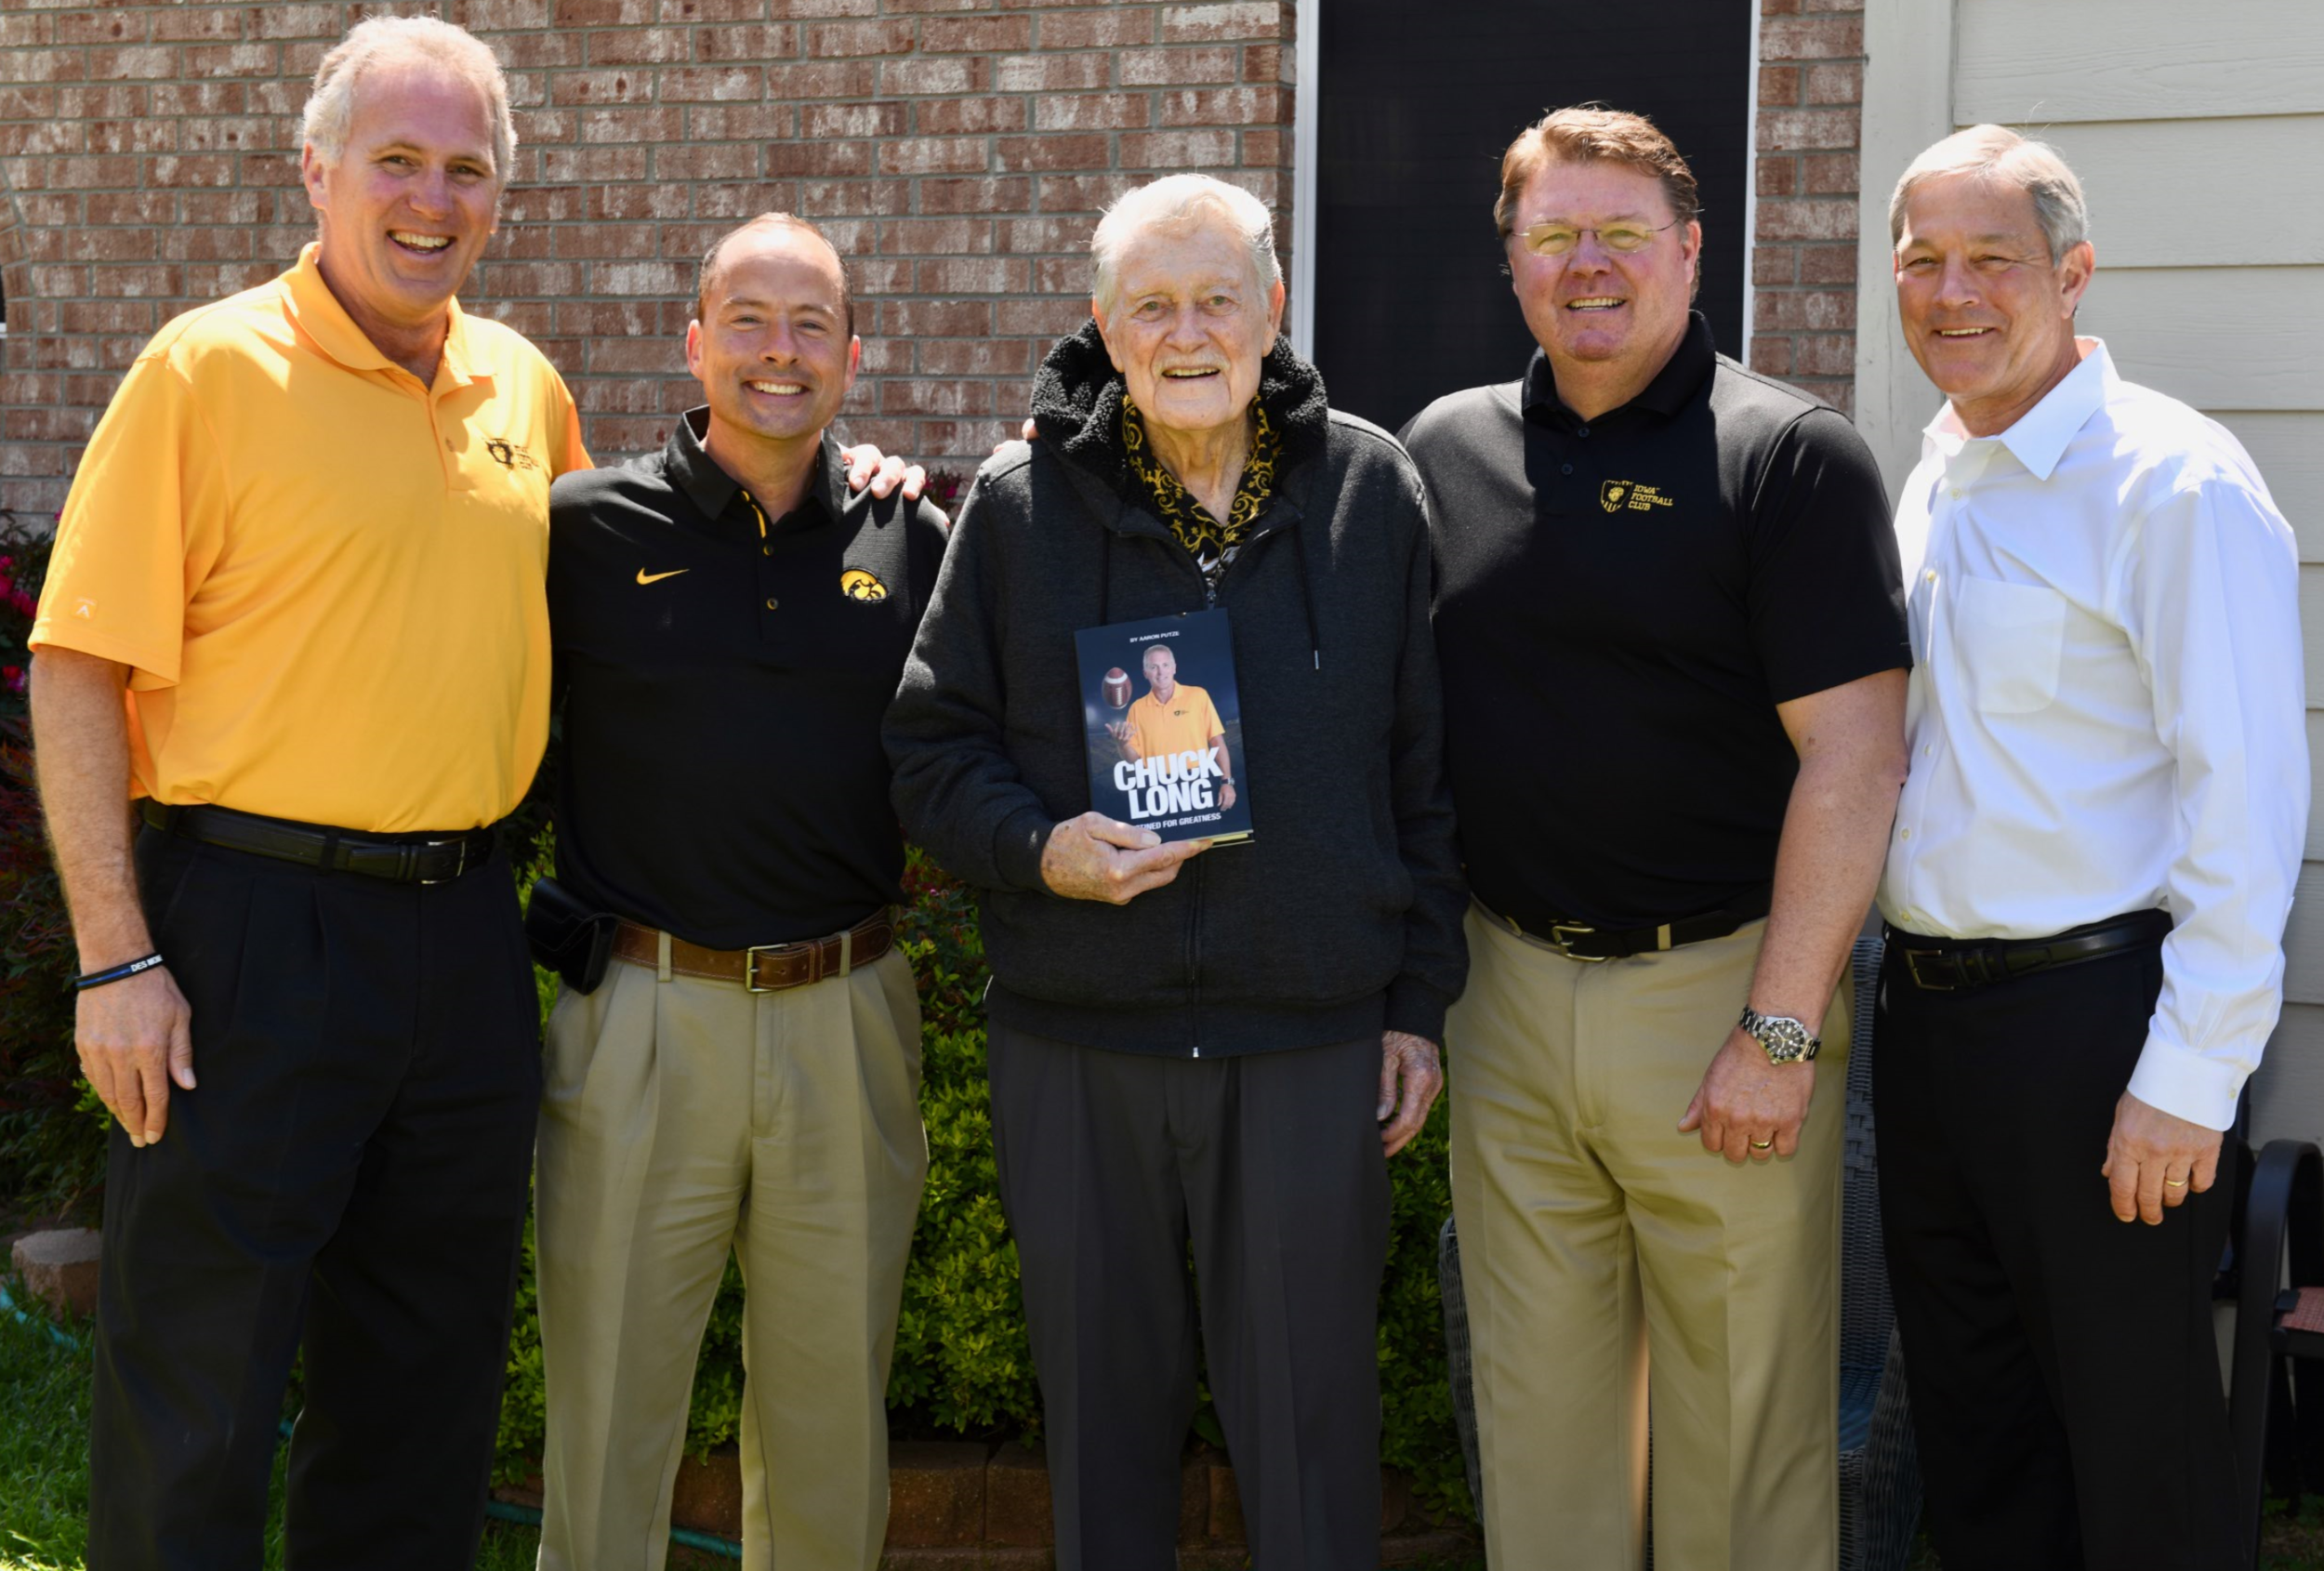 Destined for Greatness book presentation to Coach Hayden Fry (from left): Chuck Long, Aaron Putze, Coach Fry, Hap Peterson, Kirk Ferentz (April 2018).